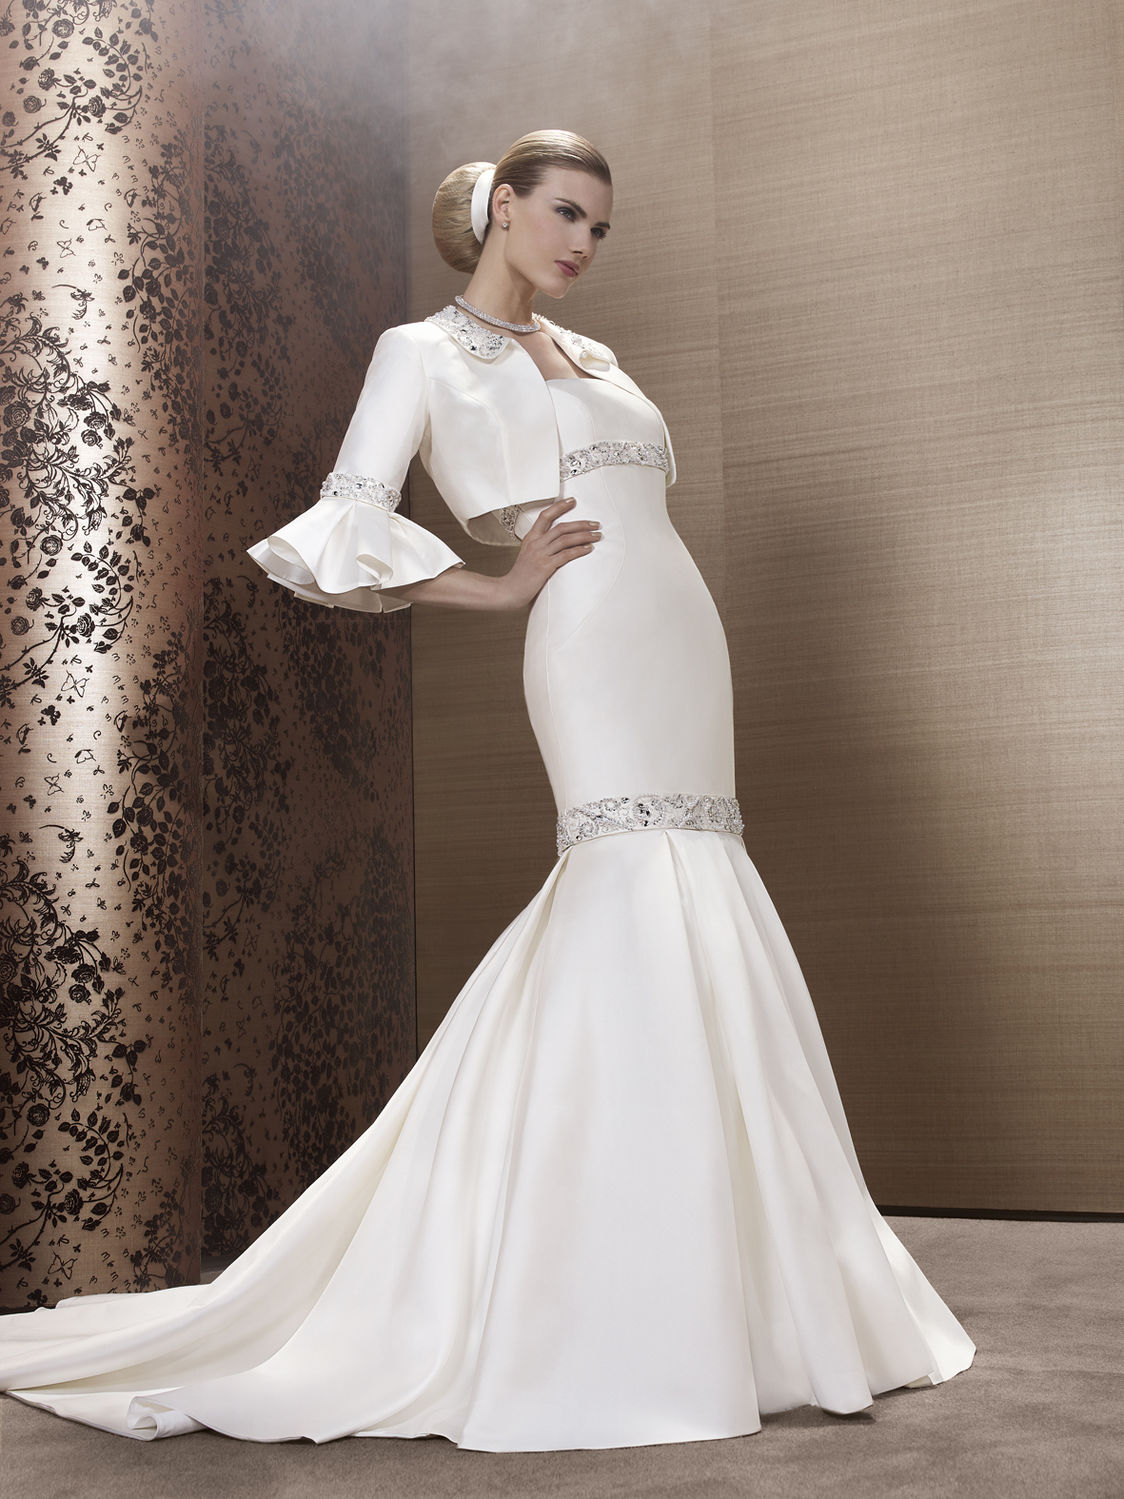 2013 wedding dress by french bridal designer elisabeth barboza kj63